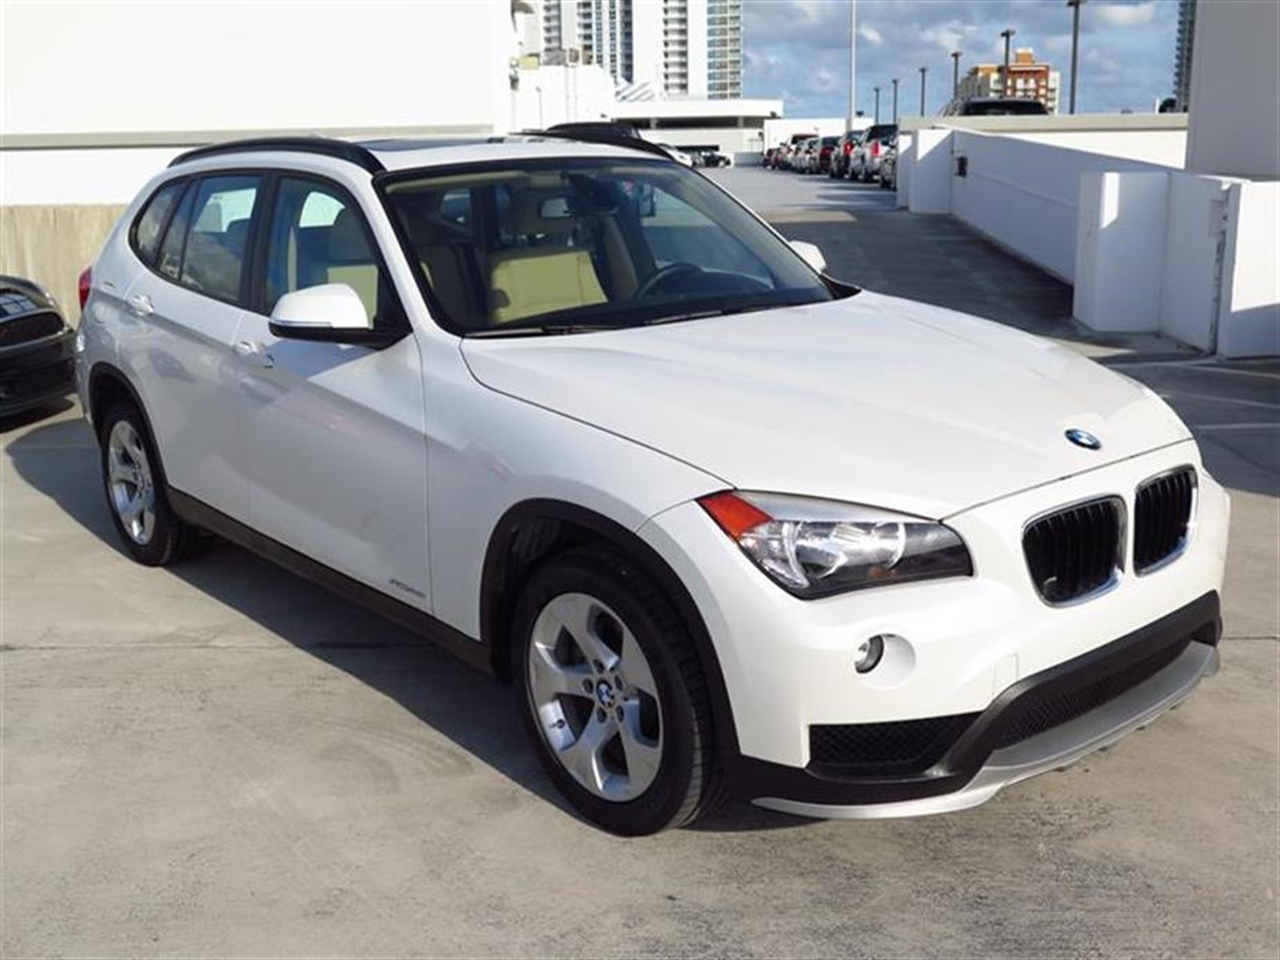 2015 BMW X1 RWD 4dr sDrive28i 10052 miles 2 Seatback Storage Pockets 3 12V DC Power Outlets LEAT